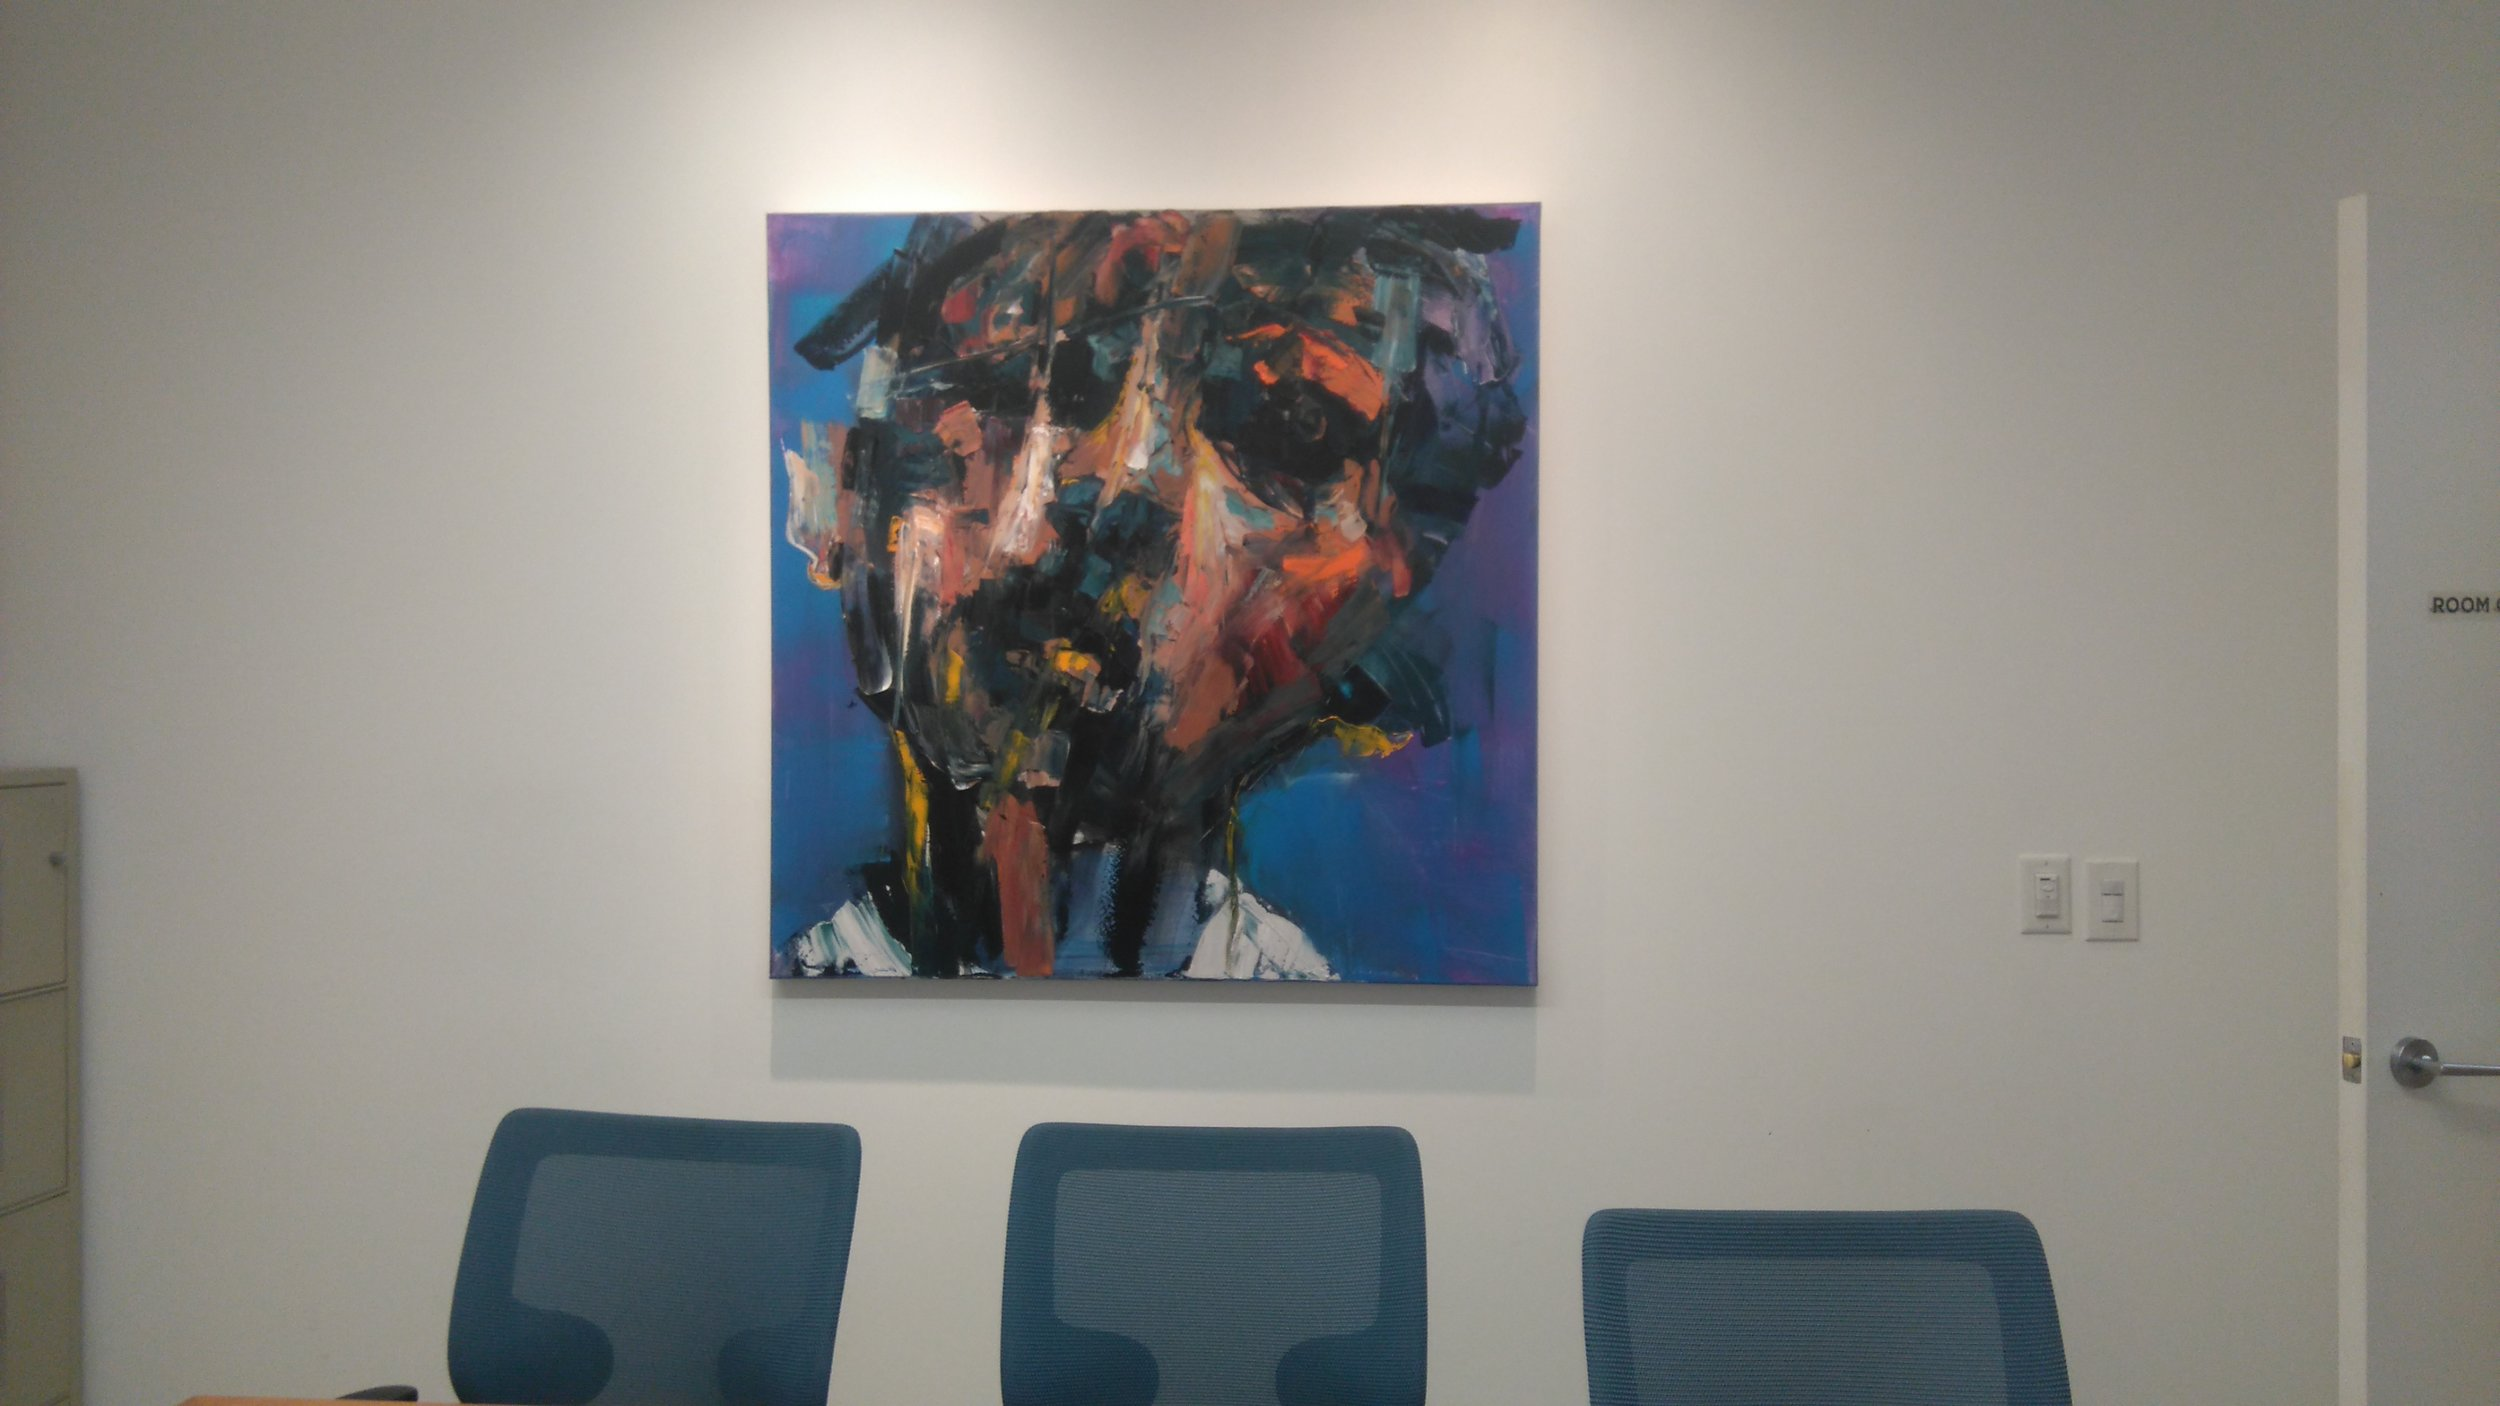 Abstract portrait hanging in the boardroom of Toronto Arts Foundation office in Toronto